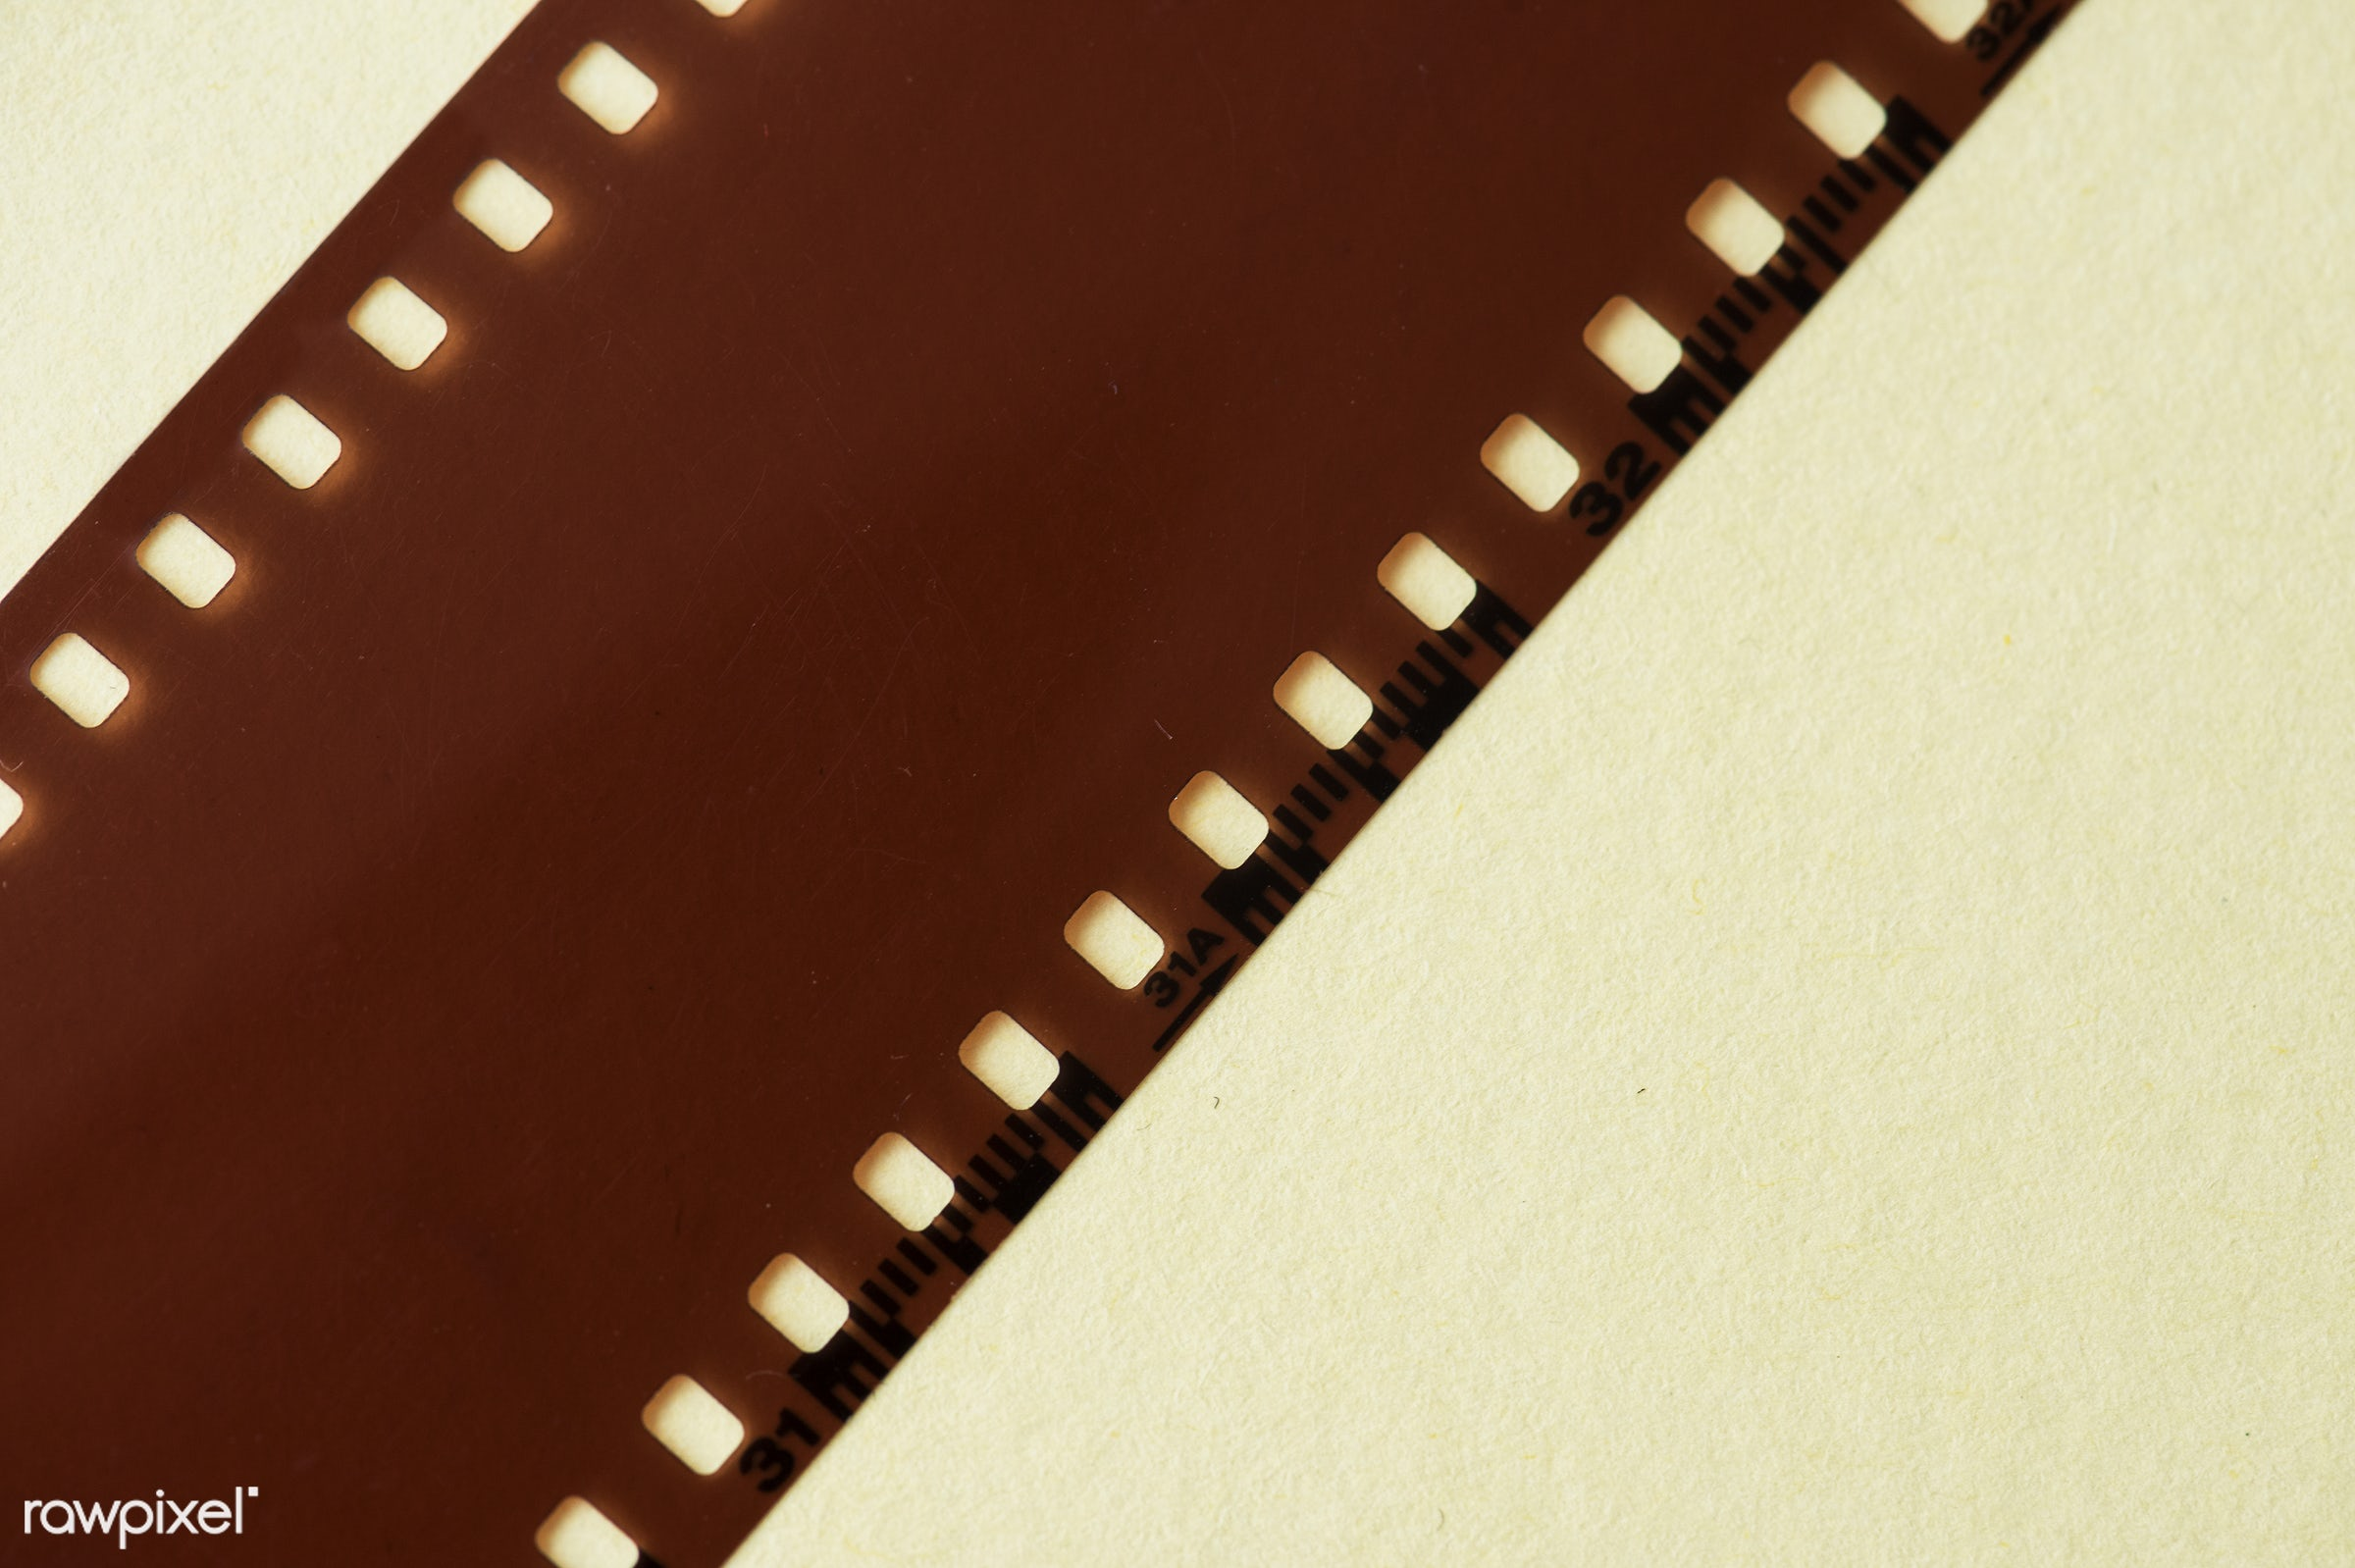 Blank film strip isolated - camera, classic, analog, blank, blank space, camera film, copy space, design space, empty, film...